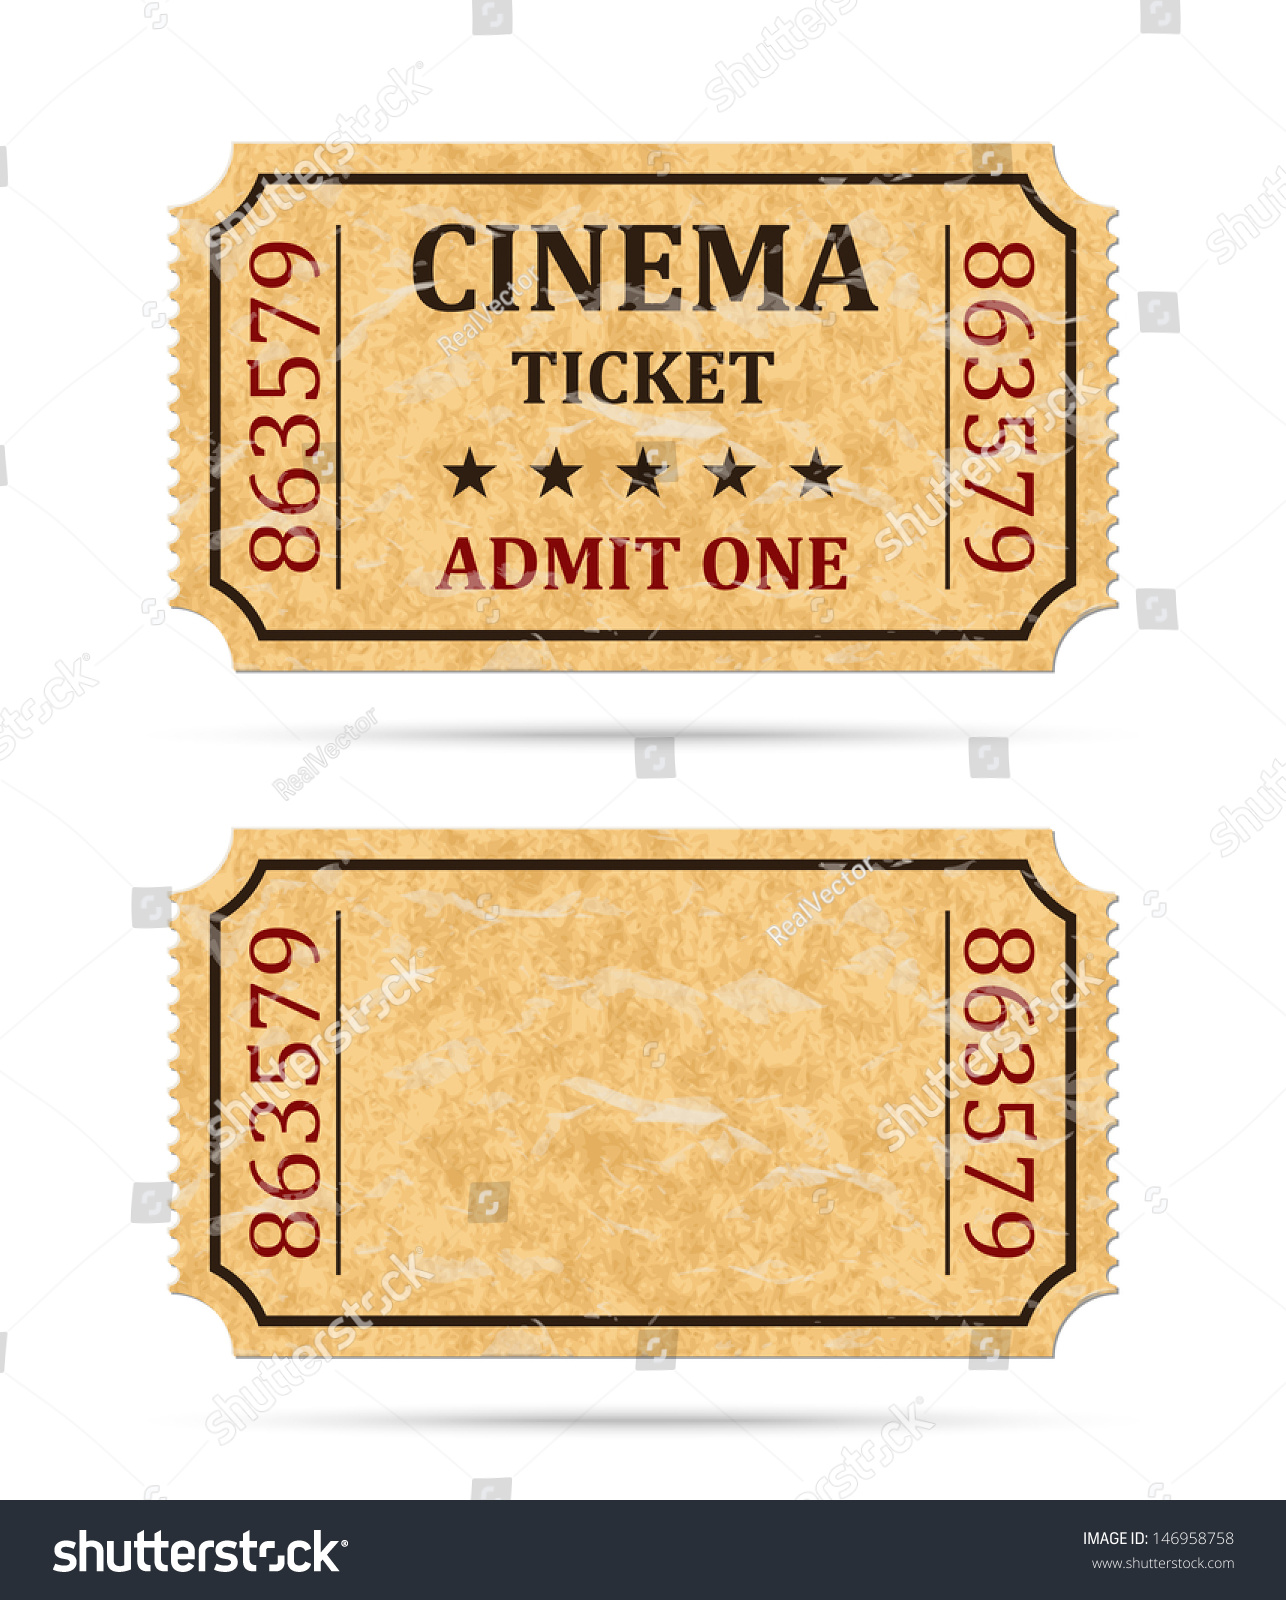 Doc400208 Admit One Ticket Template Free Admit one ticket – Movie Ticket Template Free